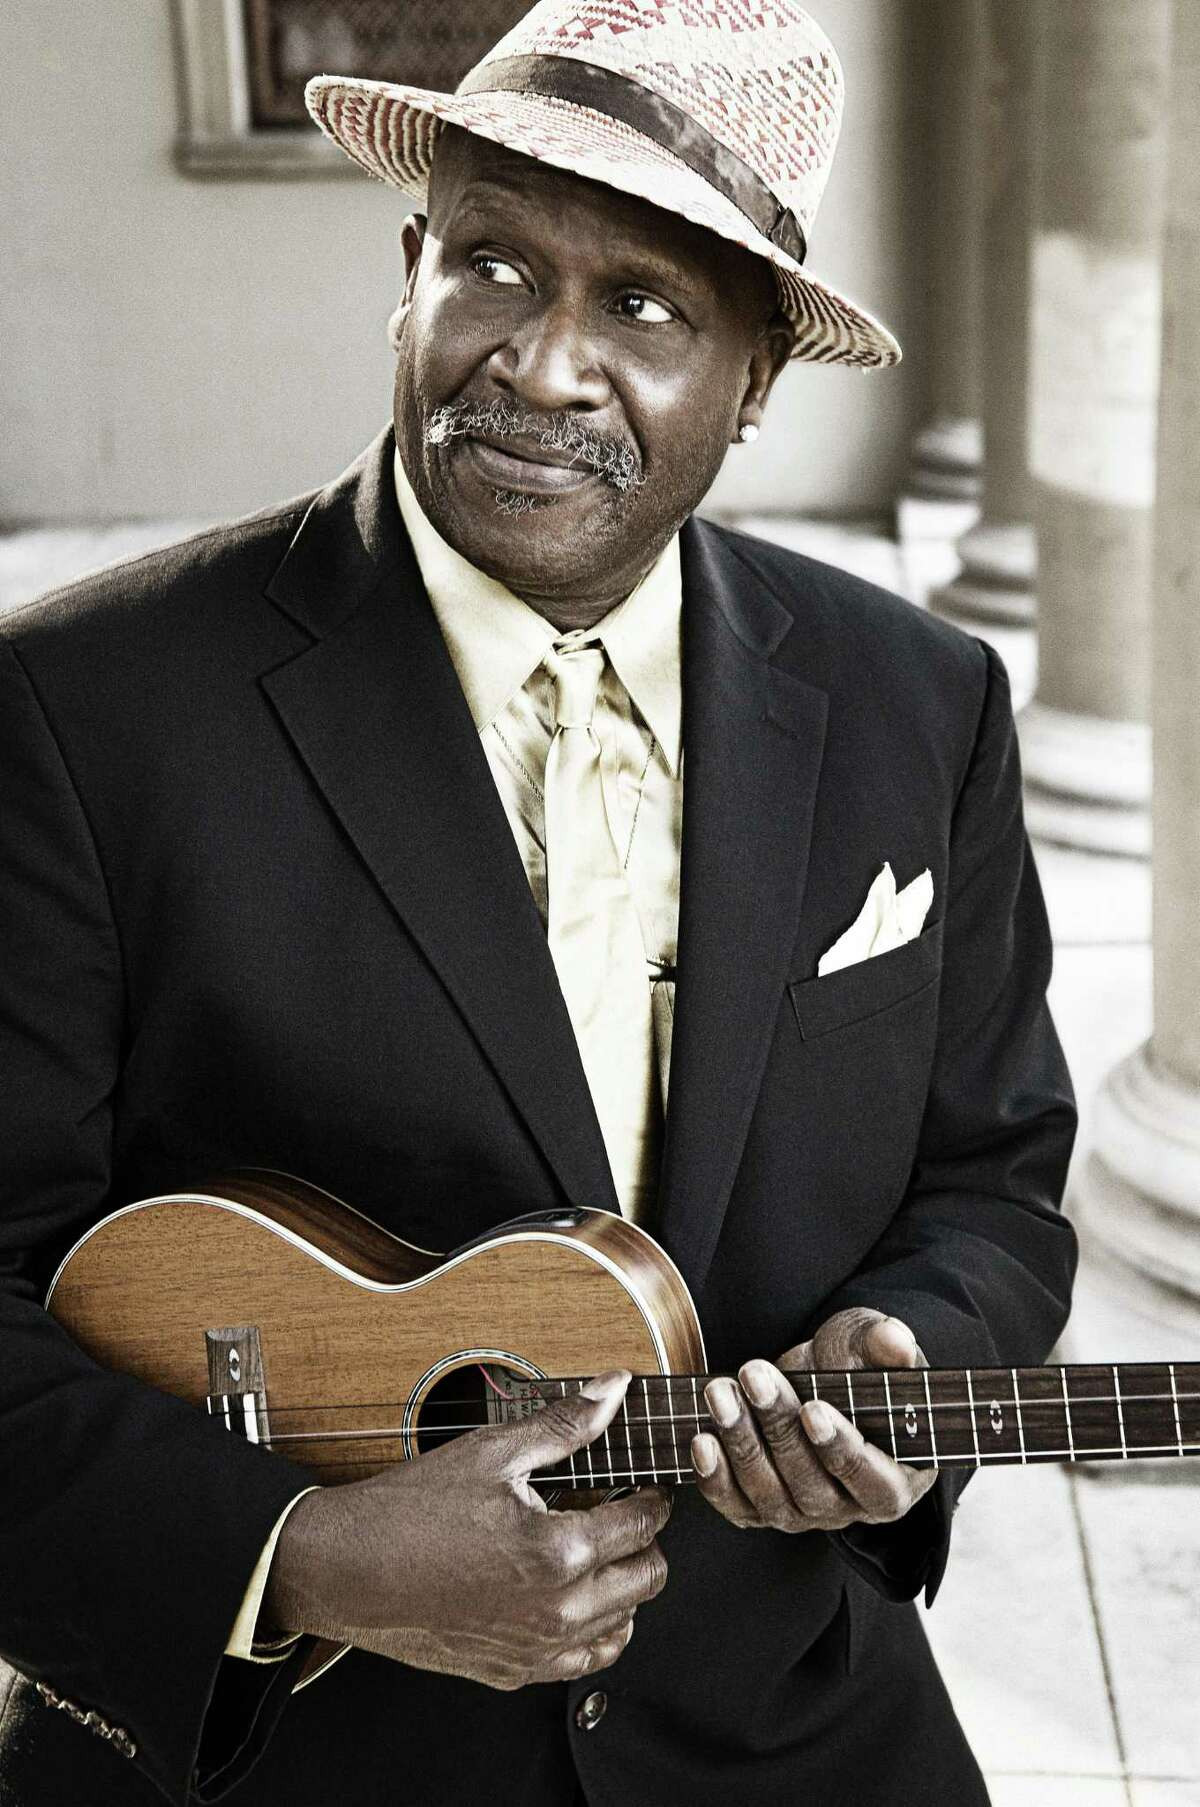 Taj Mahal performs at ZooTunes on August 15, with Marc Cohn featuring special vocalists Blind Boys of Alabama.